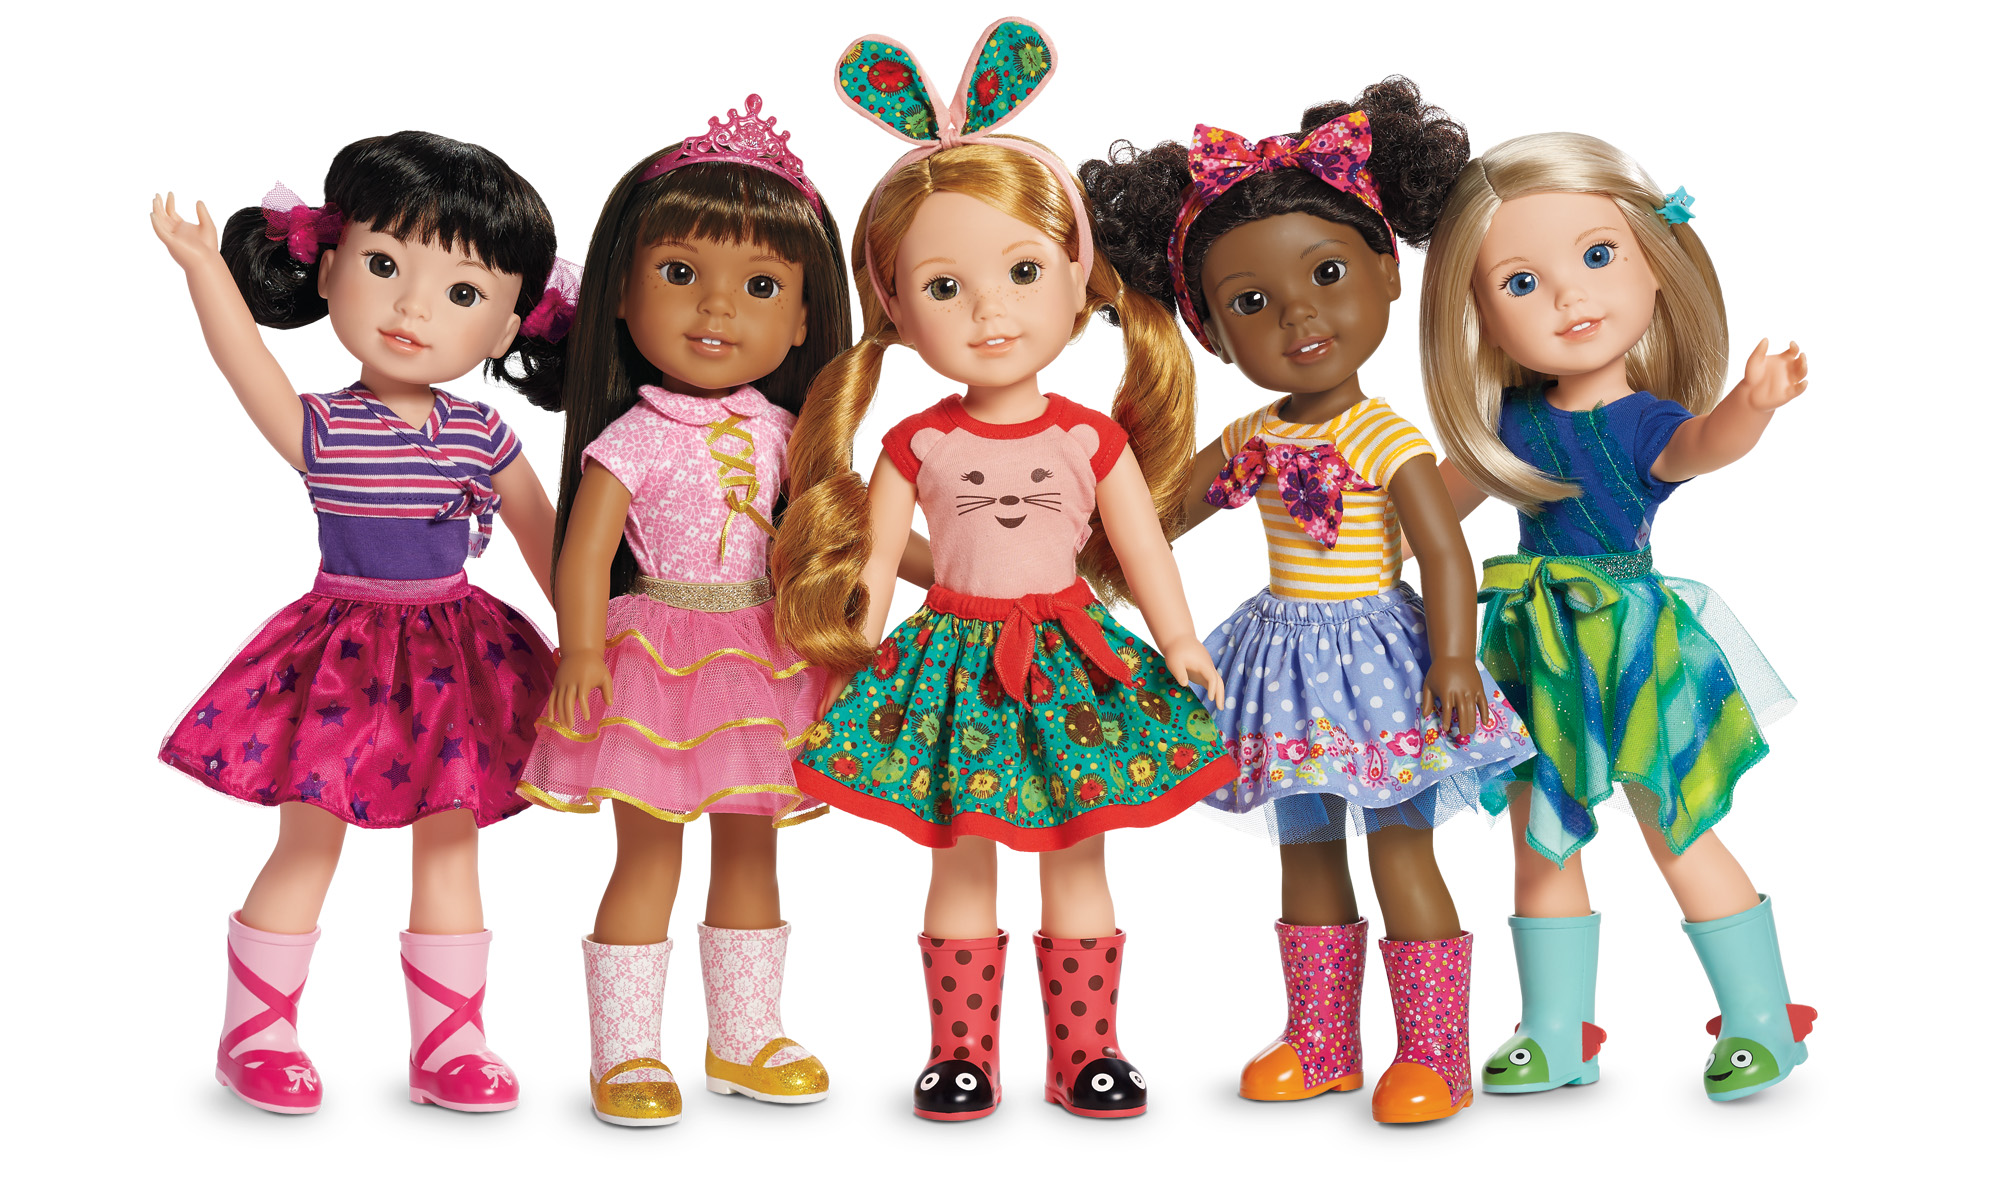 American Girl Launches 39 Welliewishers 39 Doll Line Talking